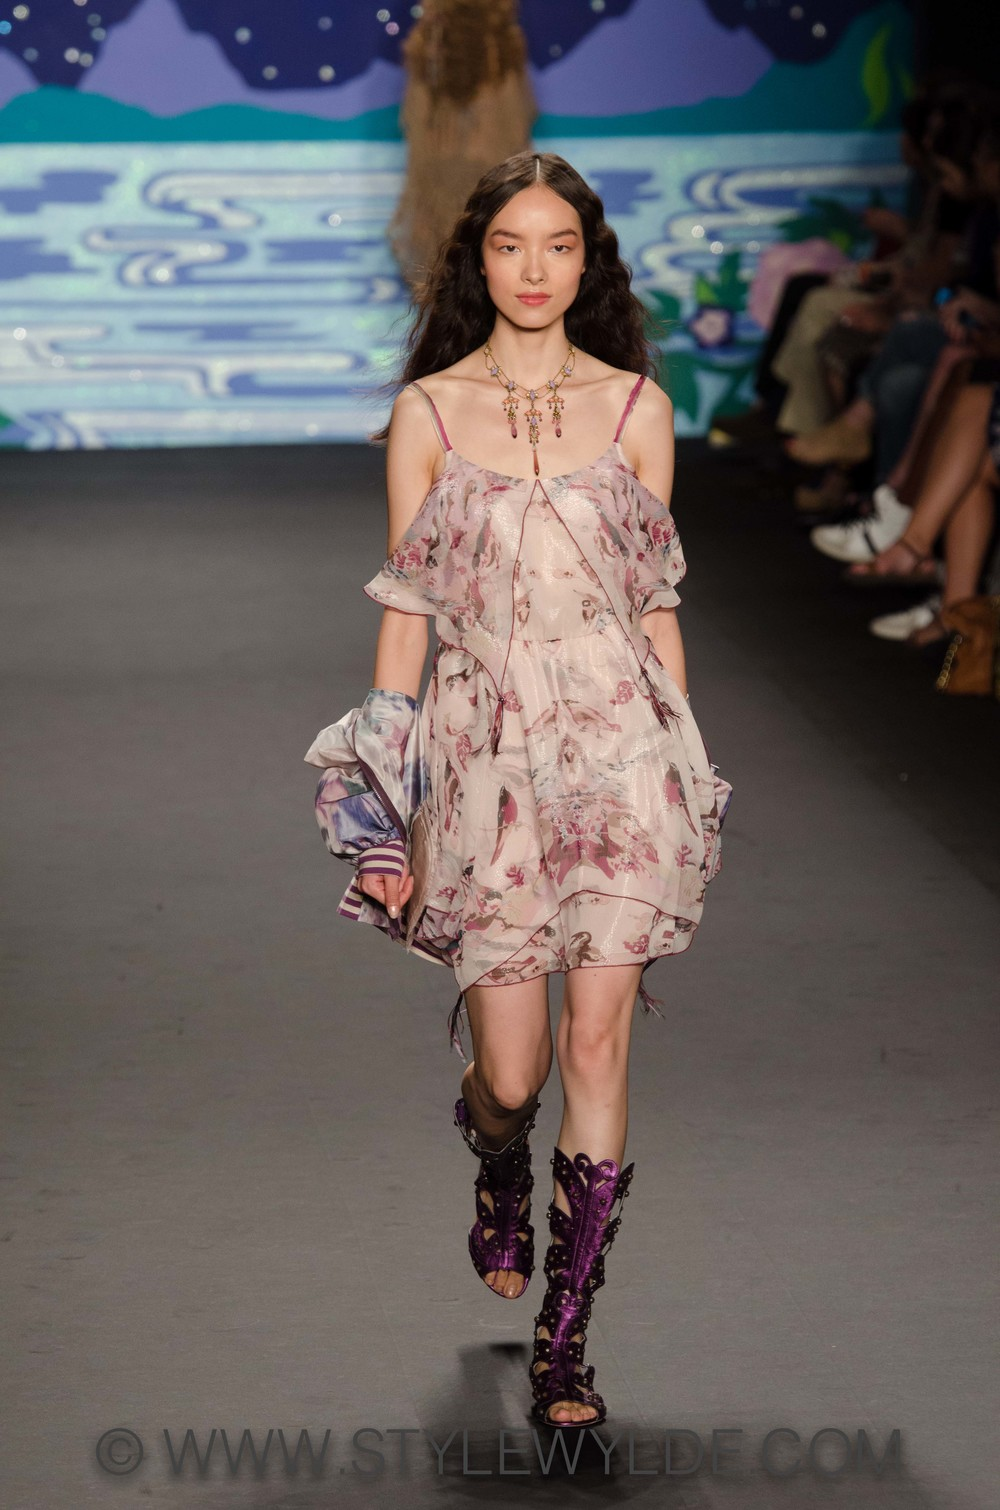 STYLEWYLDE_ANNASUI_SS2014_GALLERY_IMAGES (14 of 49).jpg